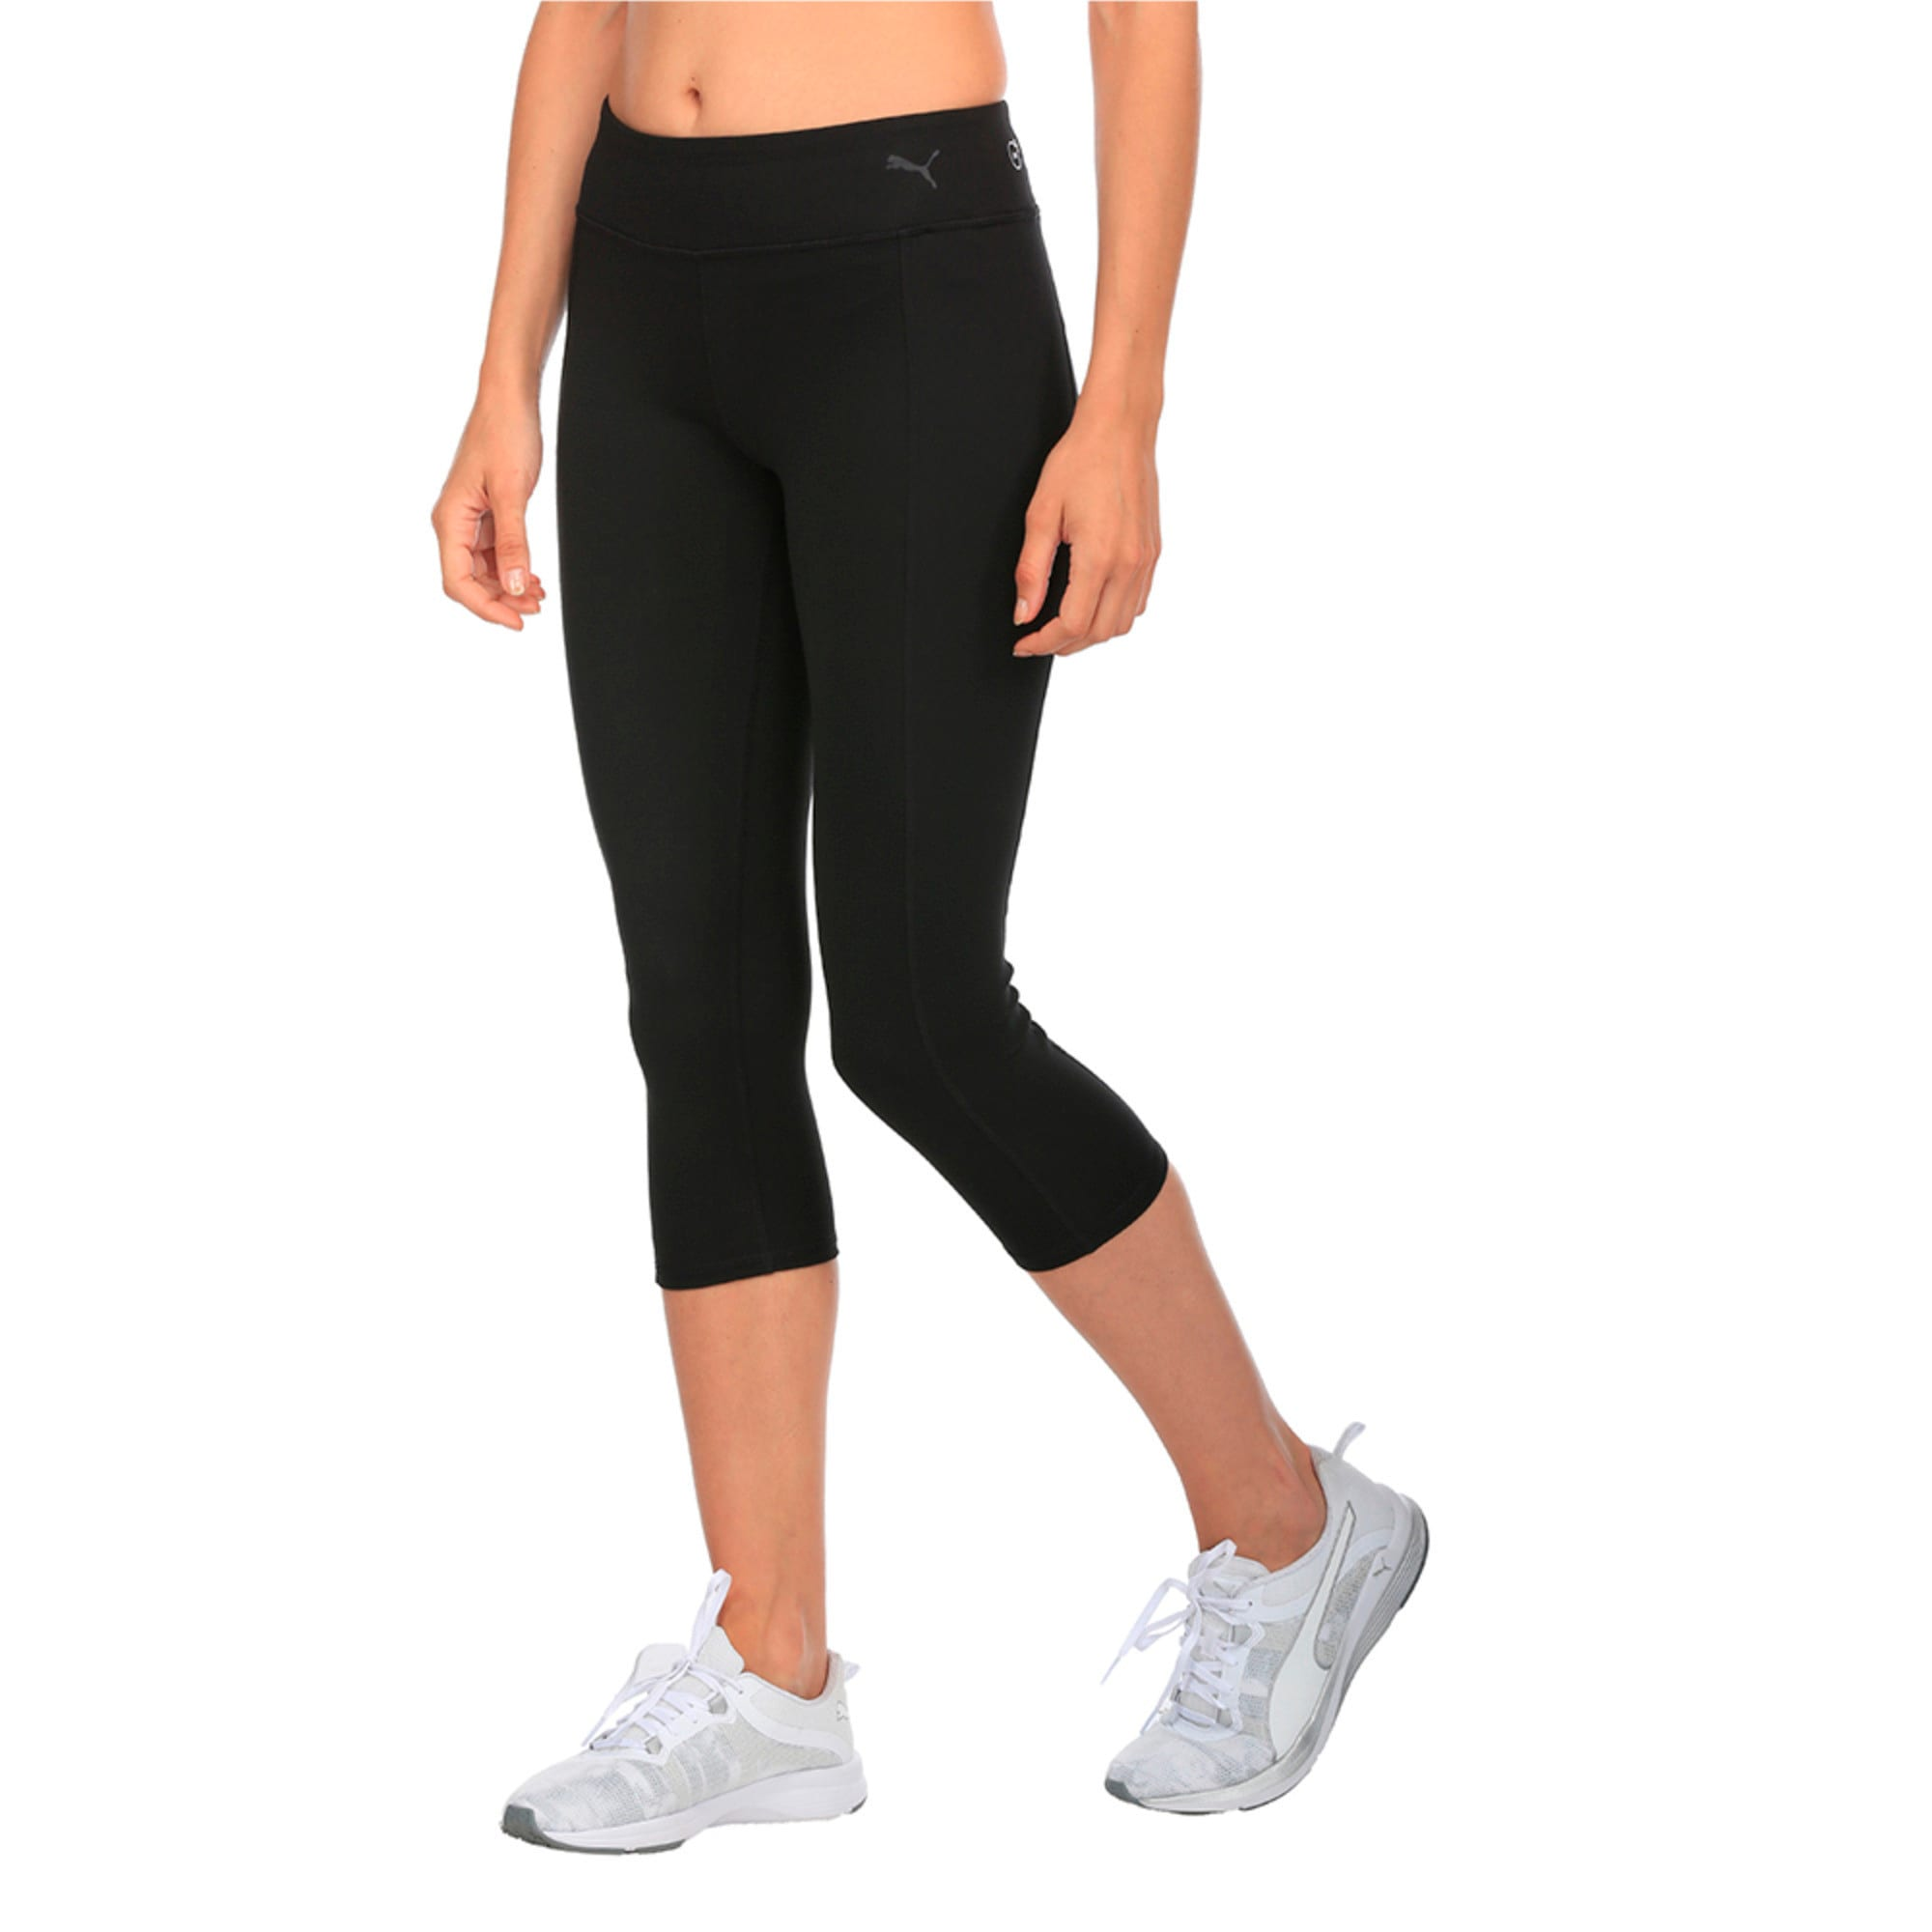 Thumbnail 3 of Essential 3 4 Tight, Puma Black, medium-IND